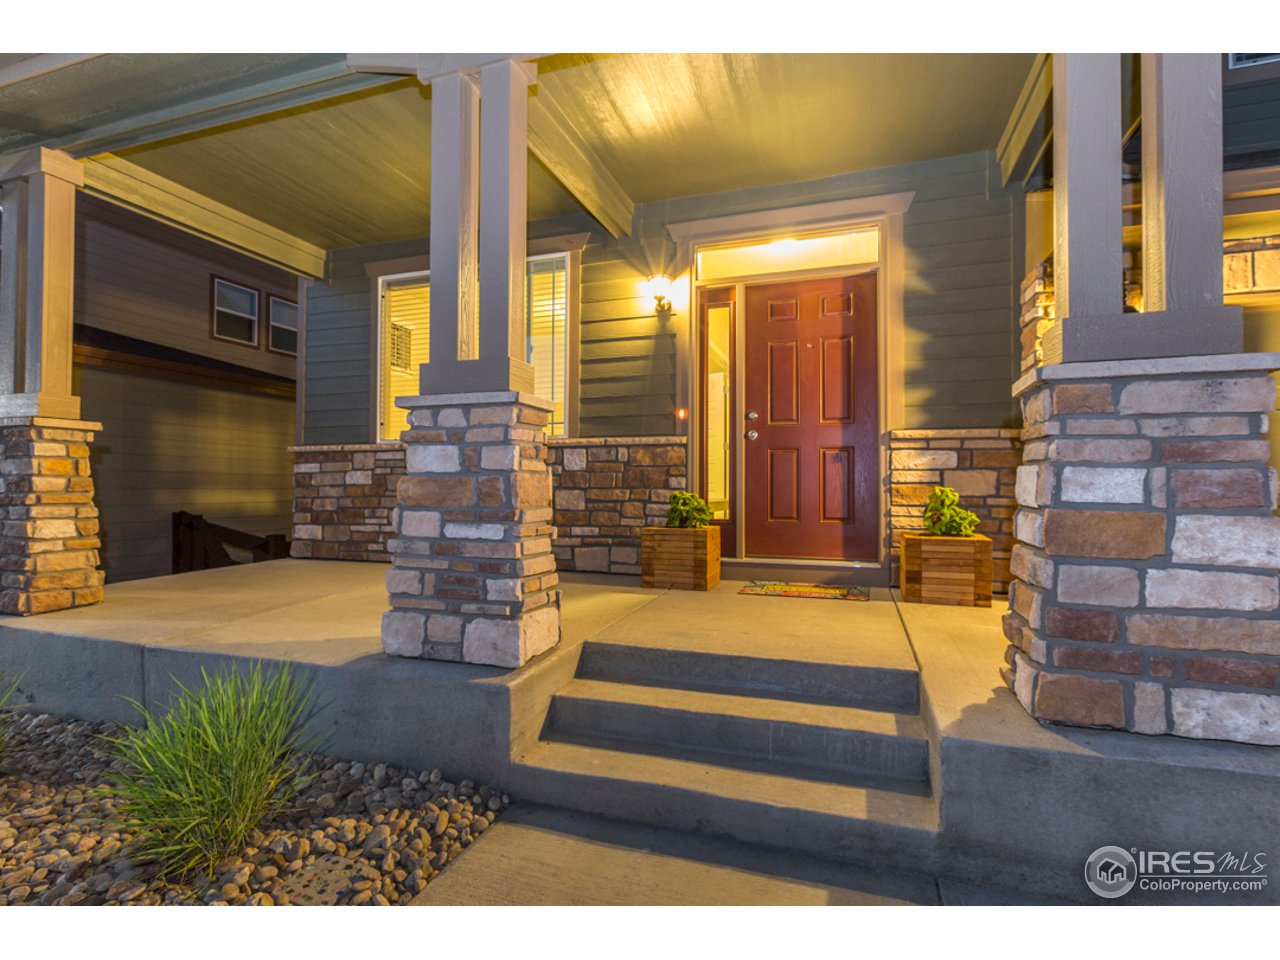 2121 Longfin Ct, Windsor, CO 80550